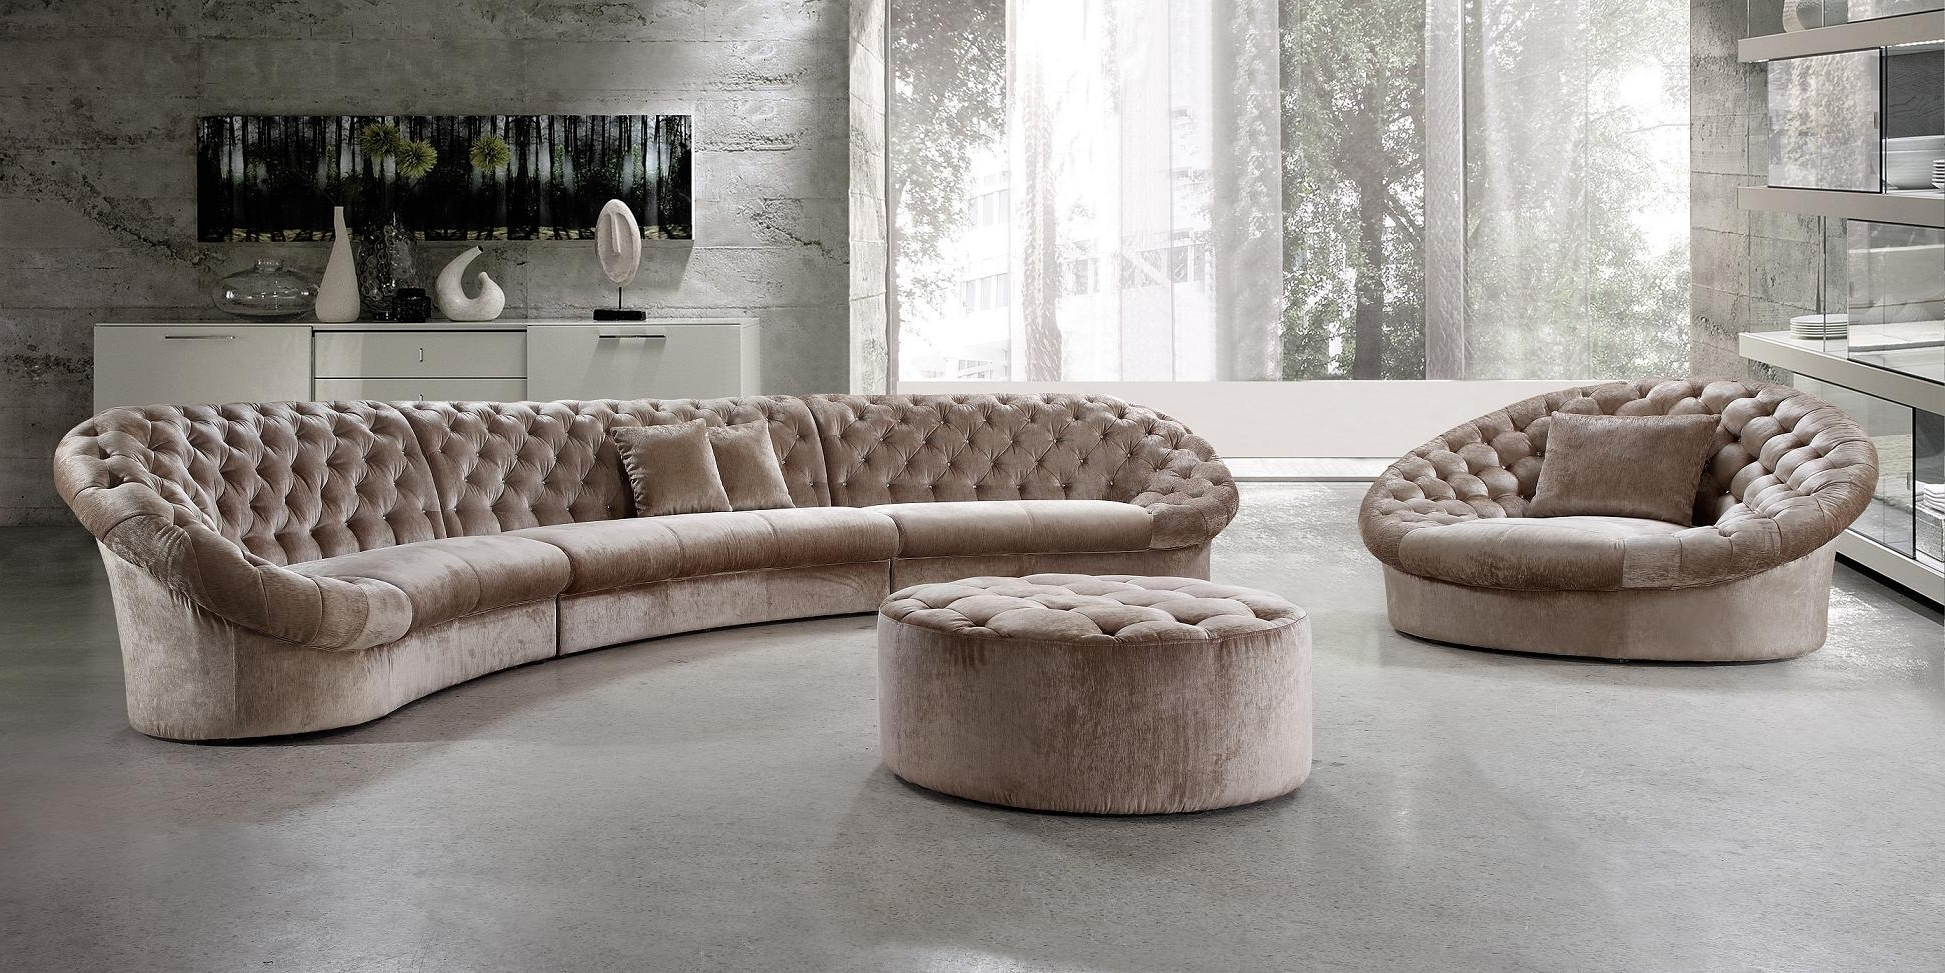 Moc Modern Within Well Liked Rounded Corner Sectional Sofas (View 13 of 20)